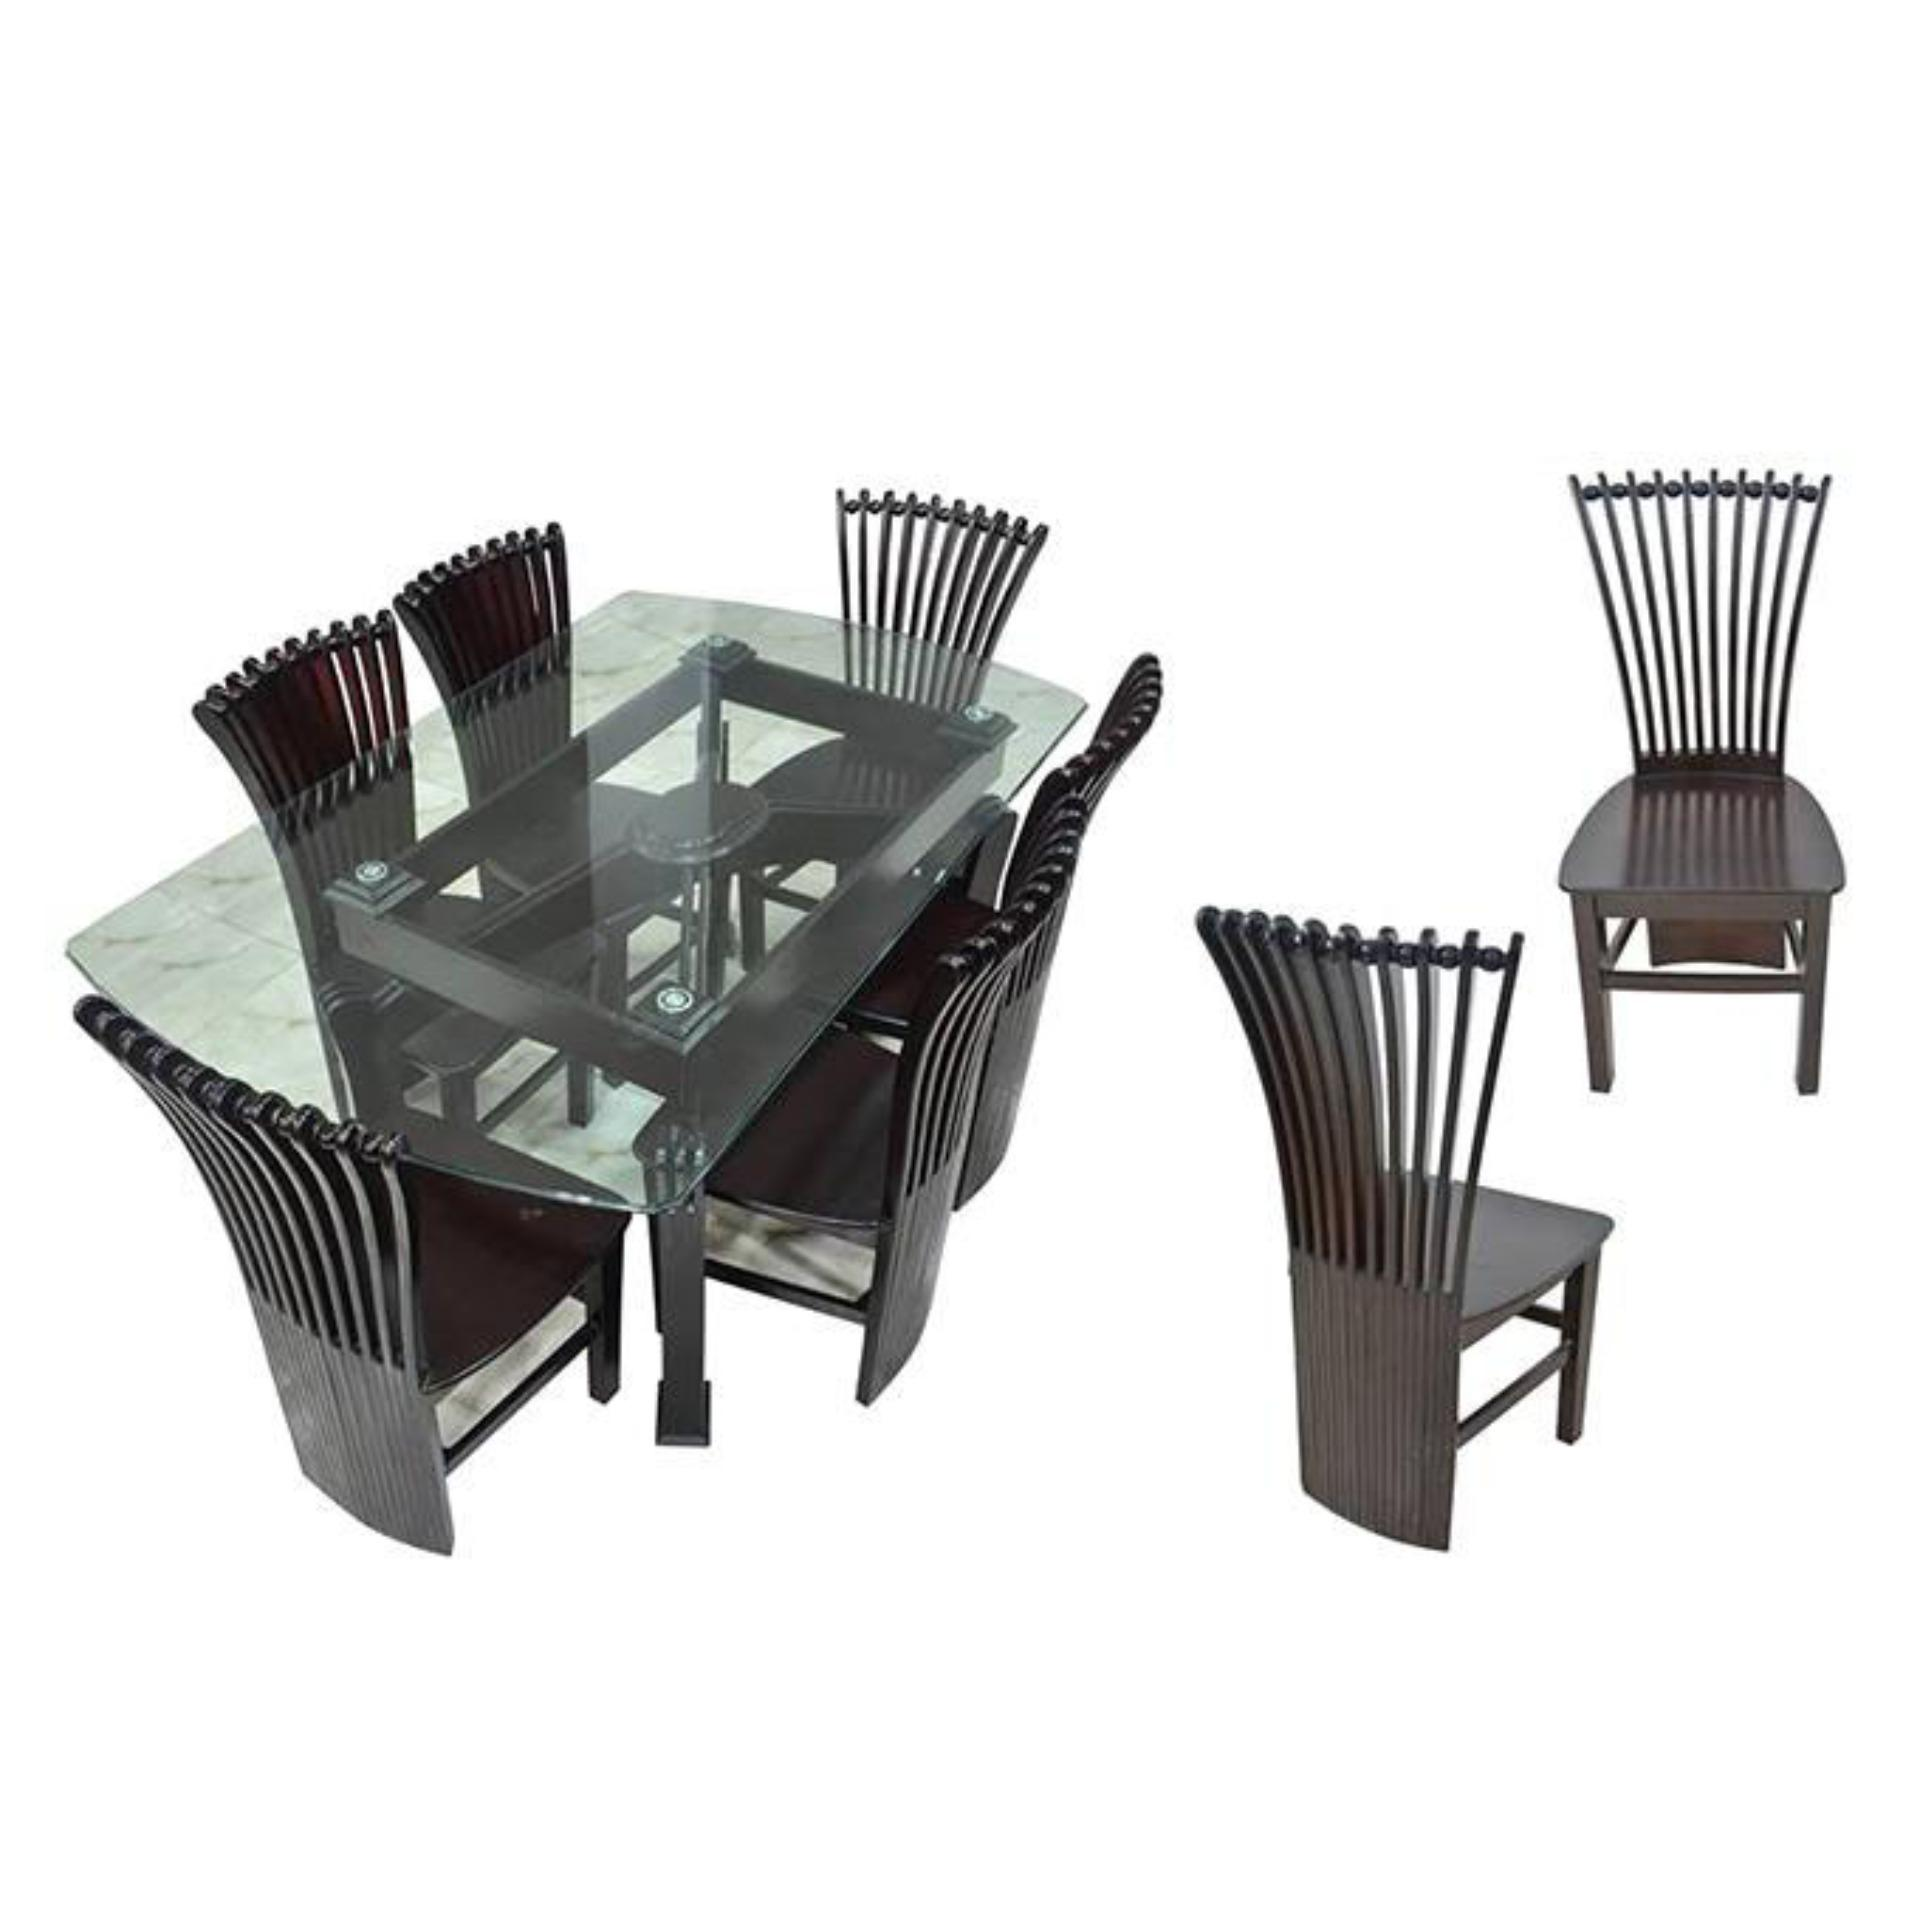 chair design bd swivel hunting with backrest kitchen dining room furniture in bangladesh dhaka online daraz di 126 canadian processed wood peacock dinning set dark chocolate